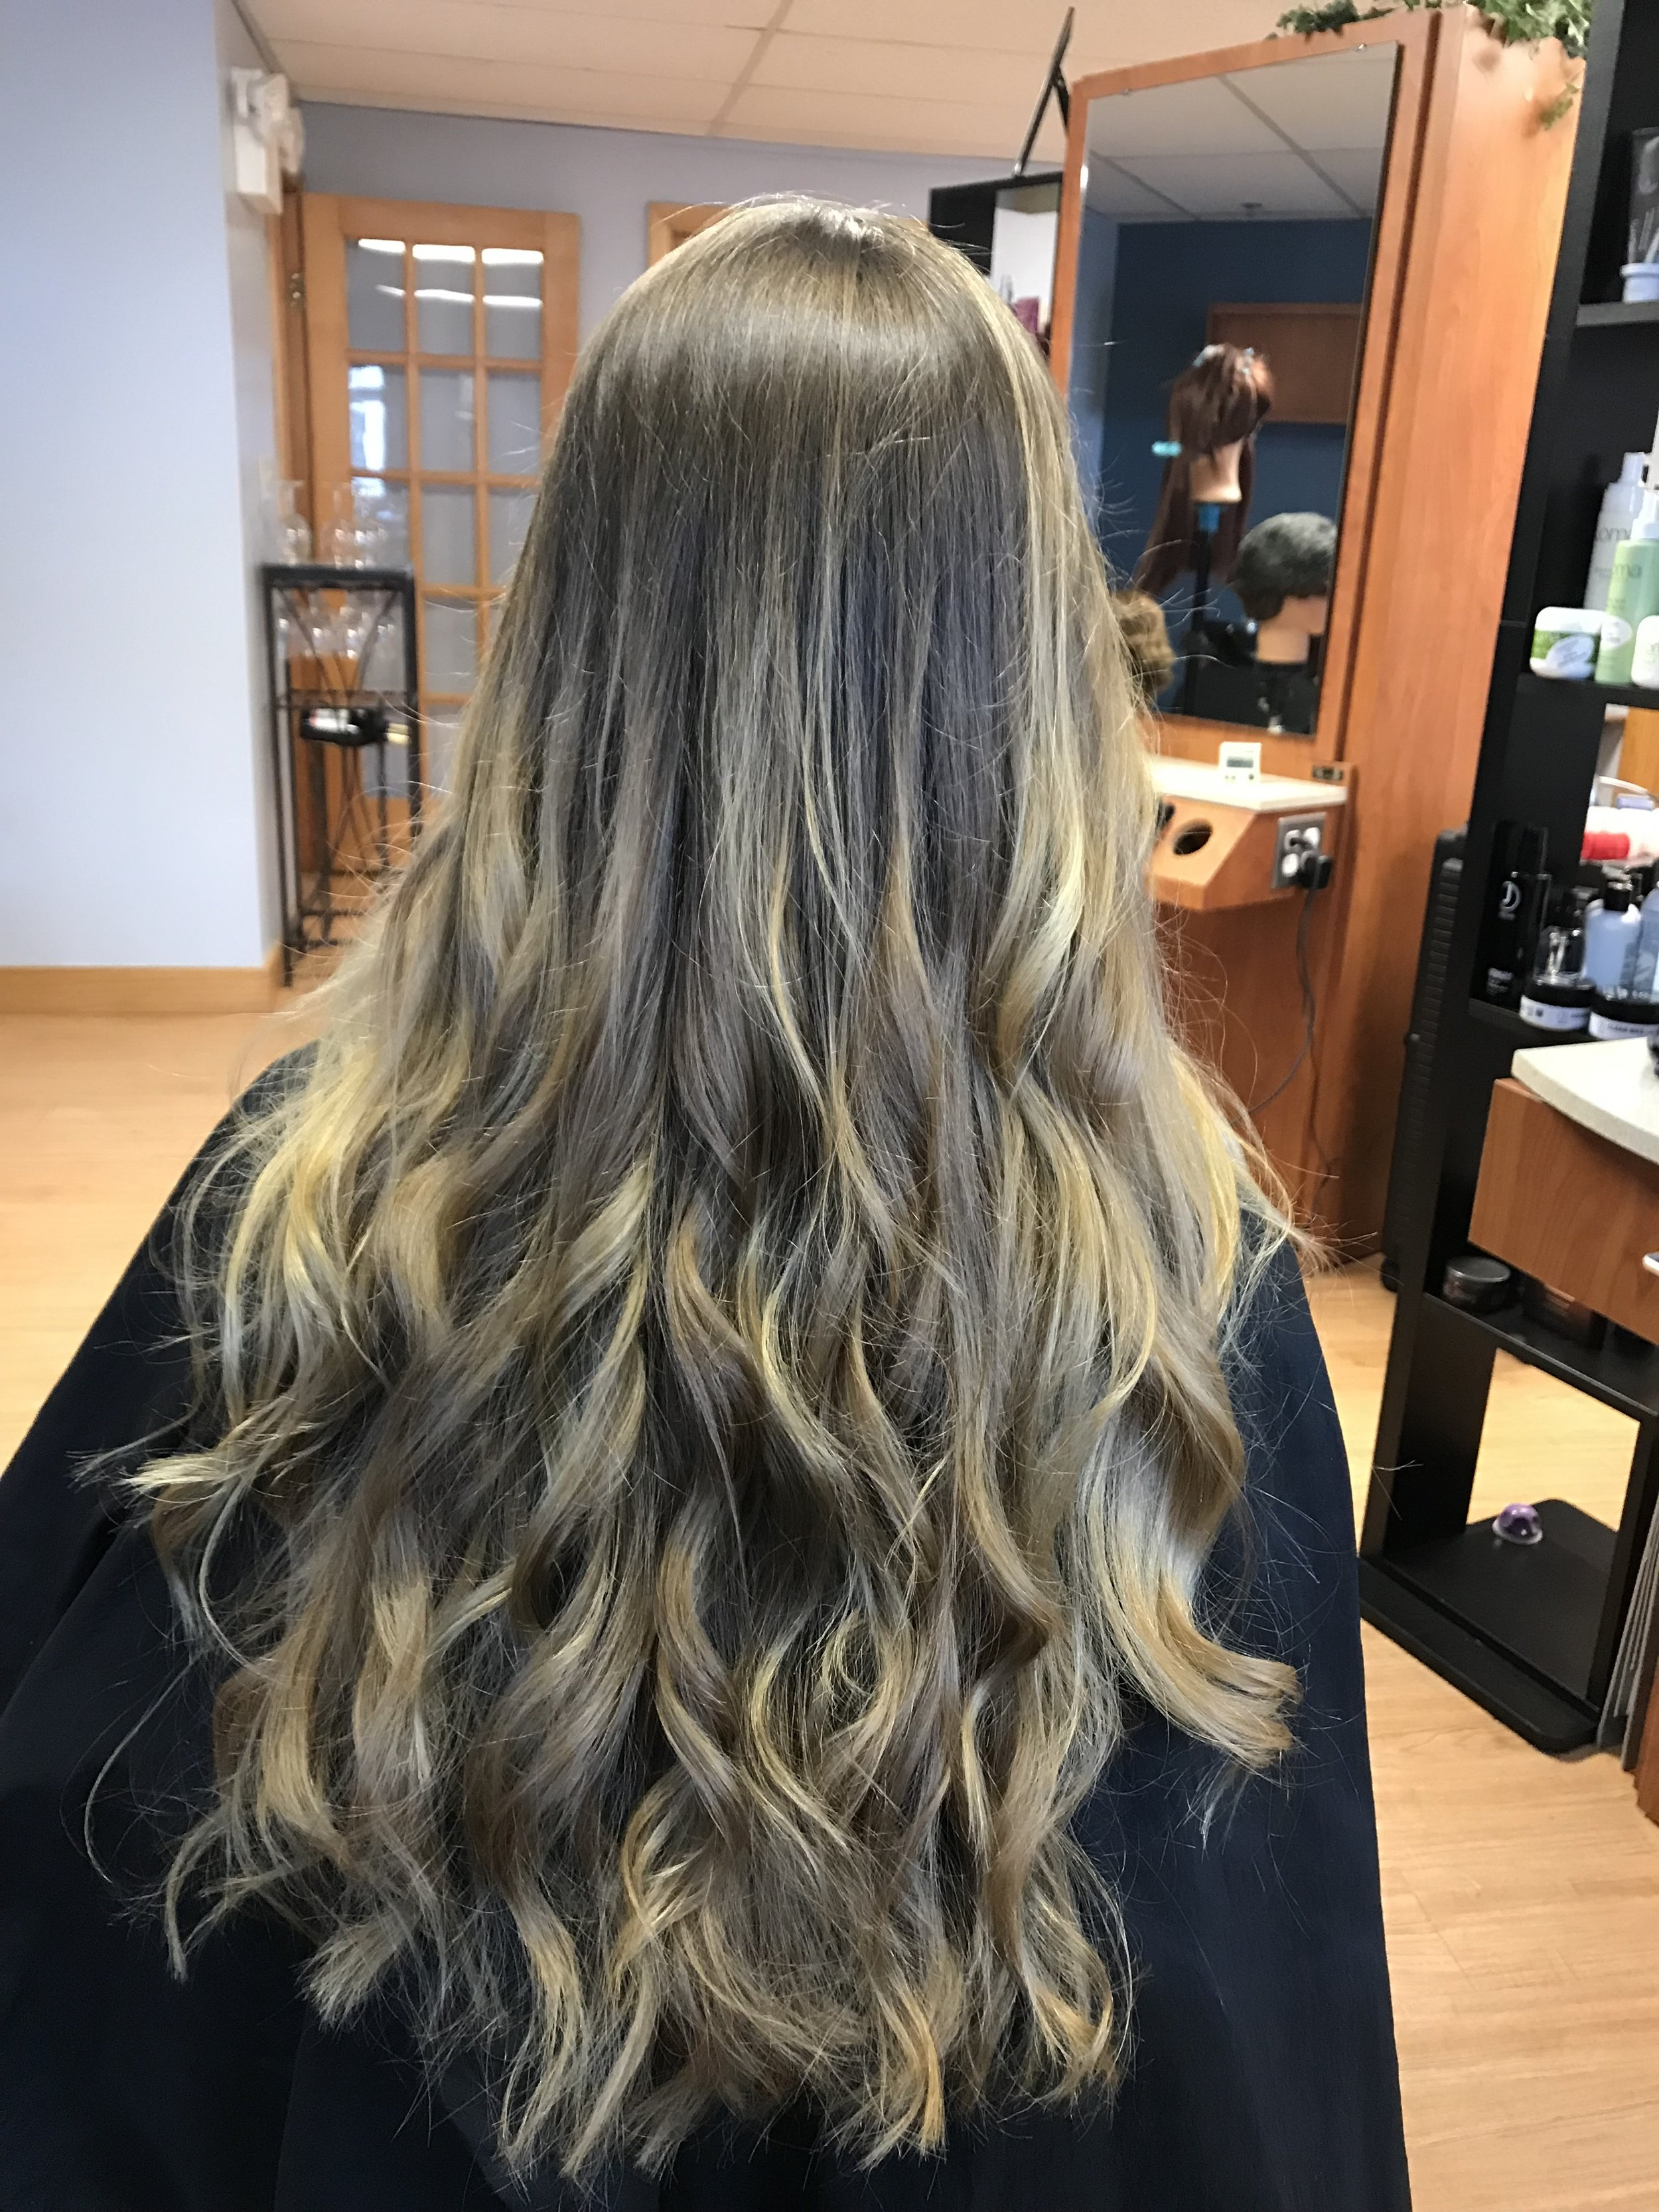 Cut and Style by Teri.jpg